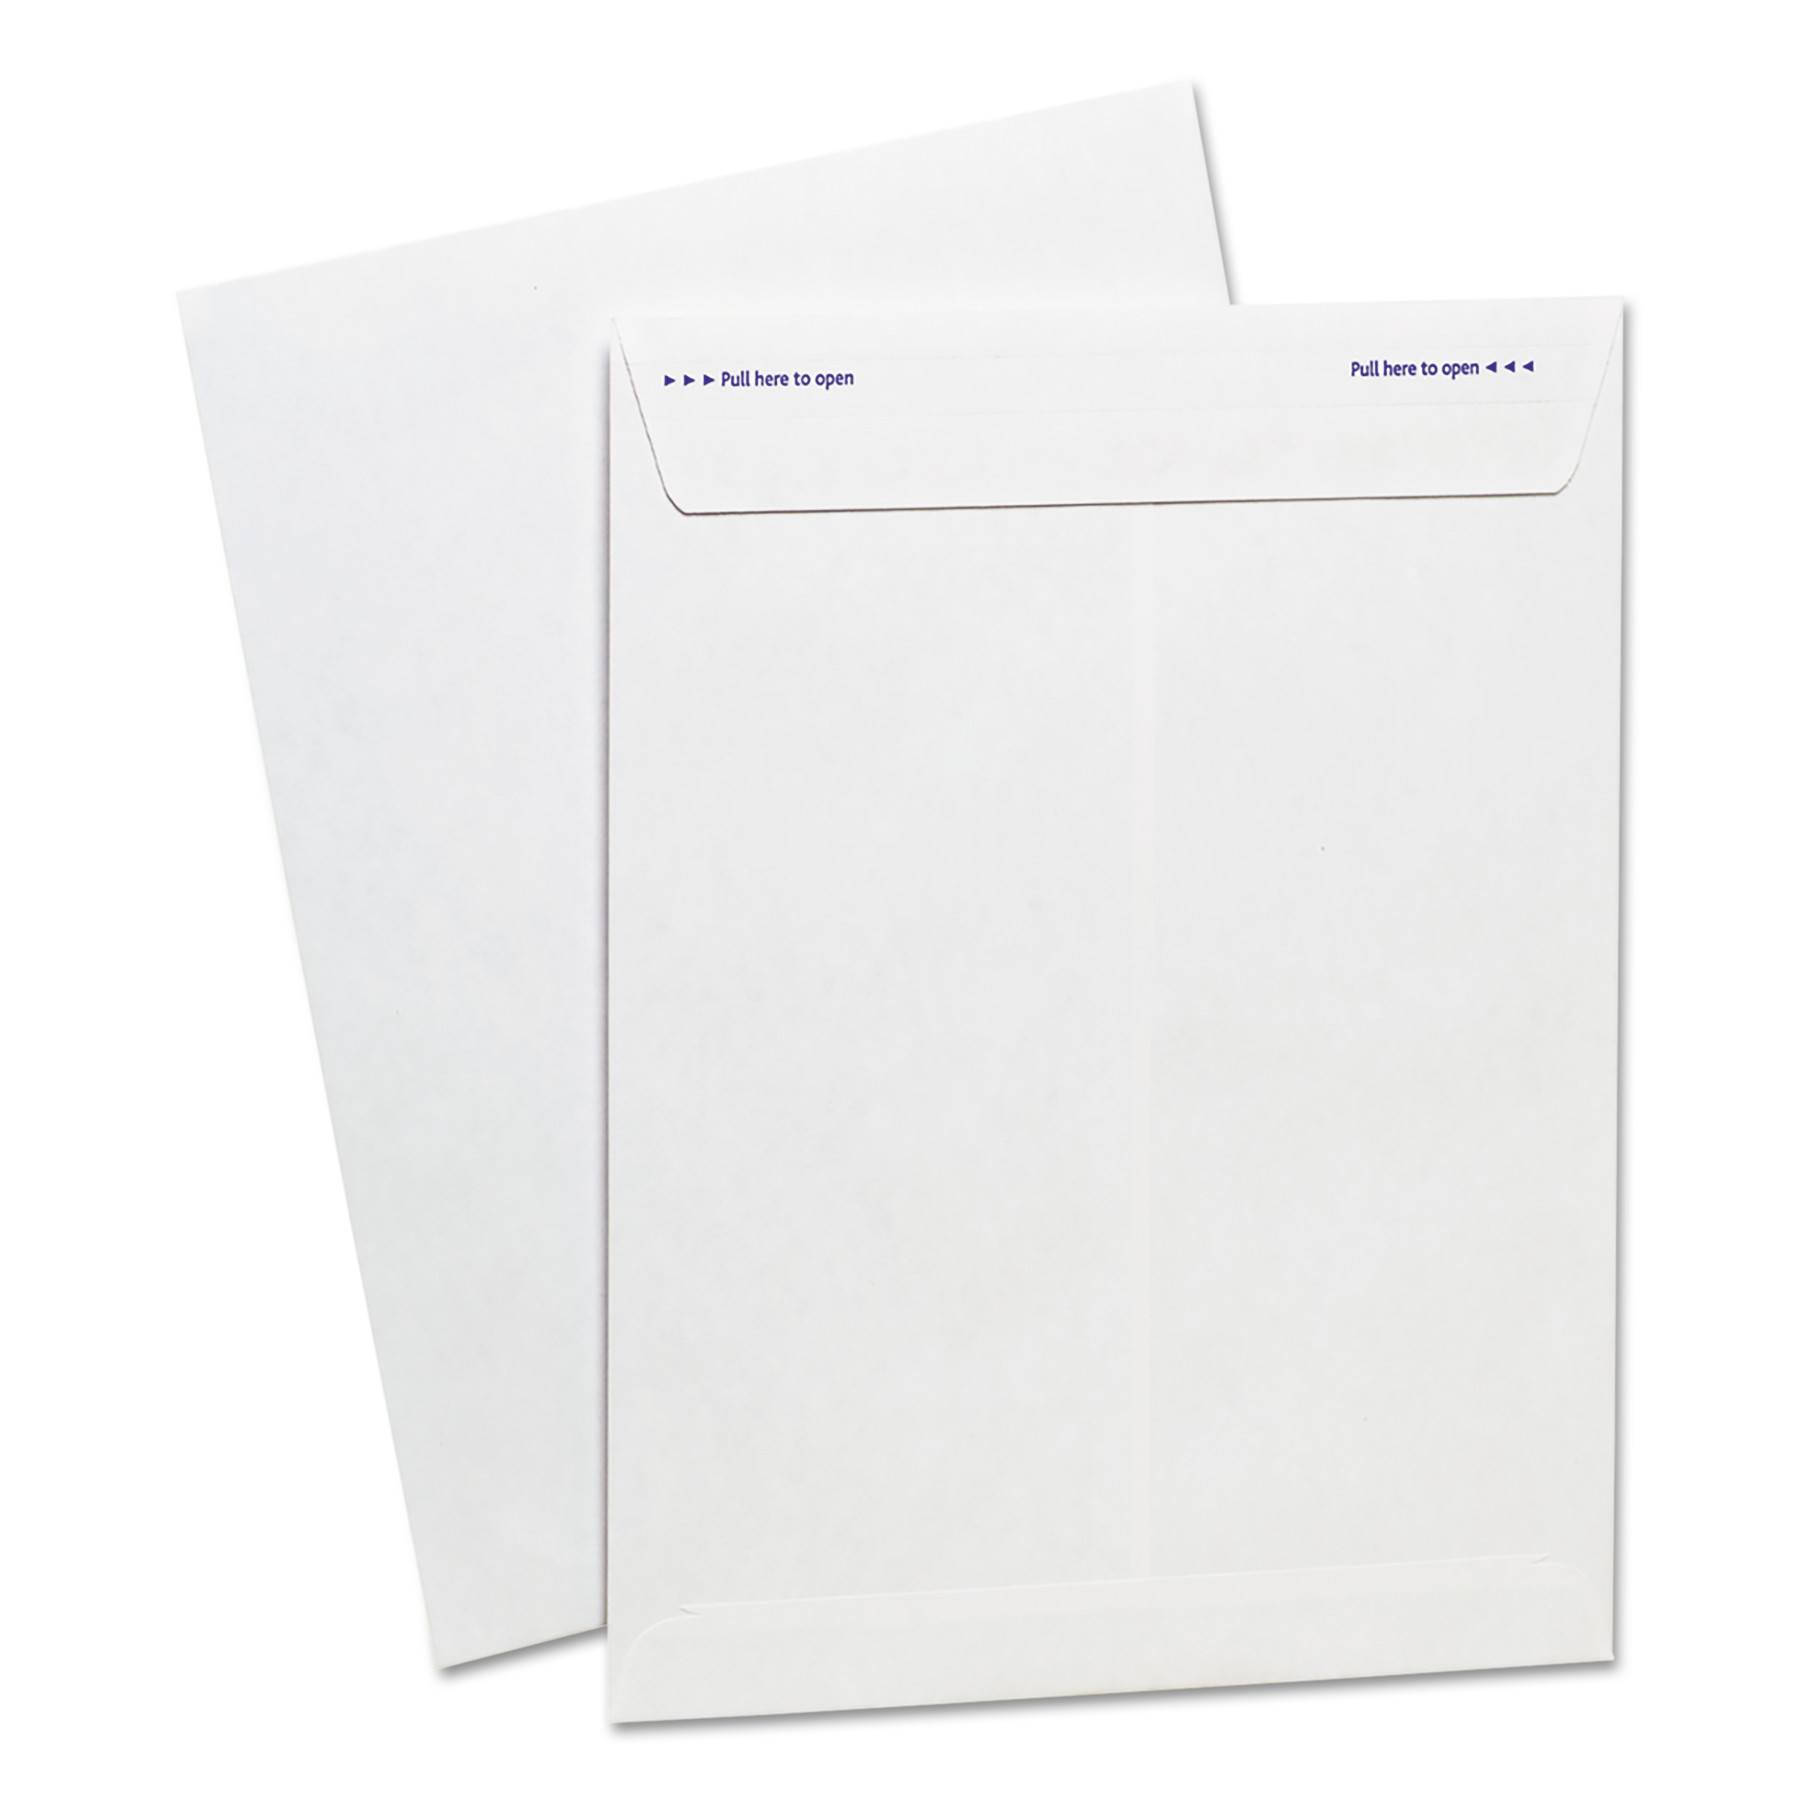 Ampad Gold Fibre Fastrip Release & Seal Catalog Envelope, 9 x 12, White, 100/Box